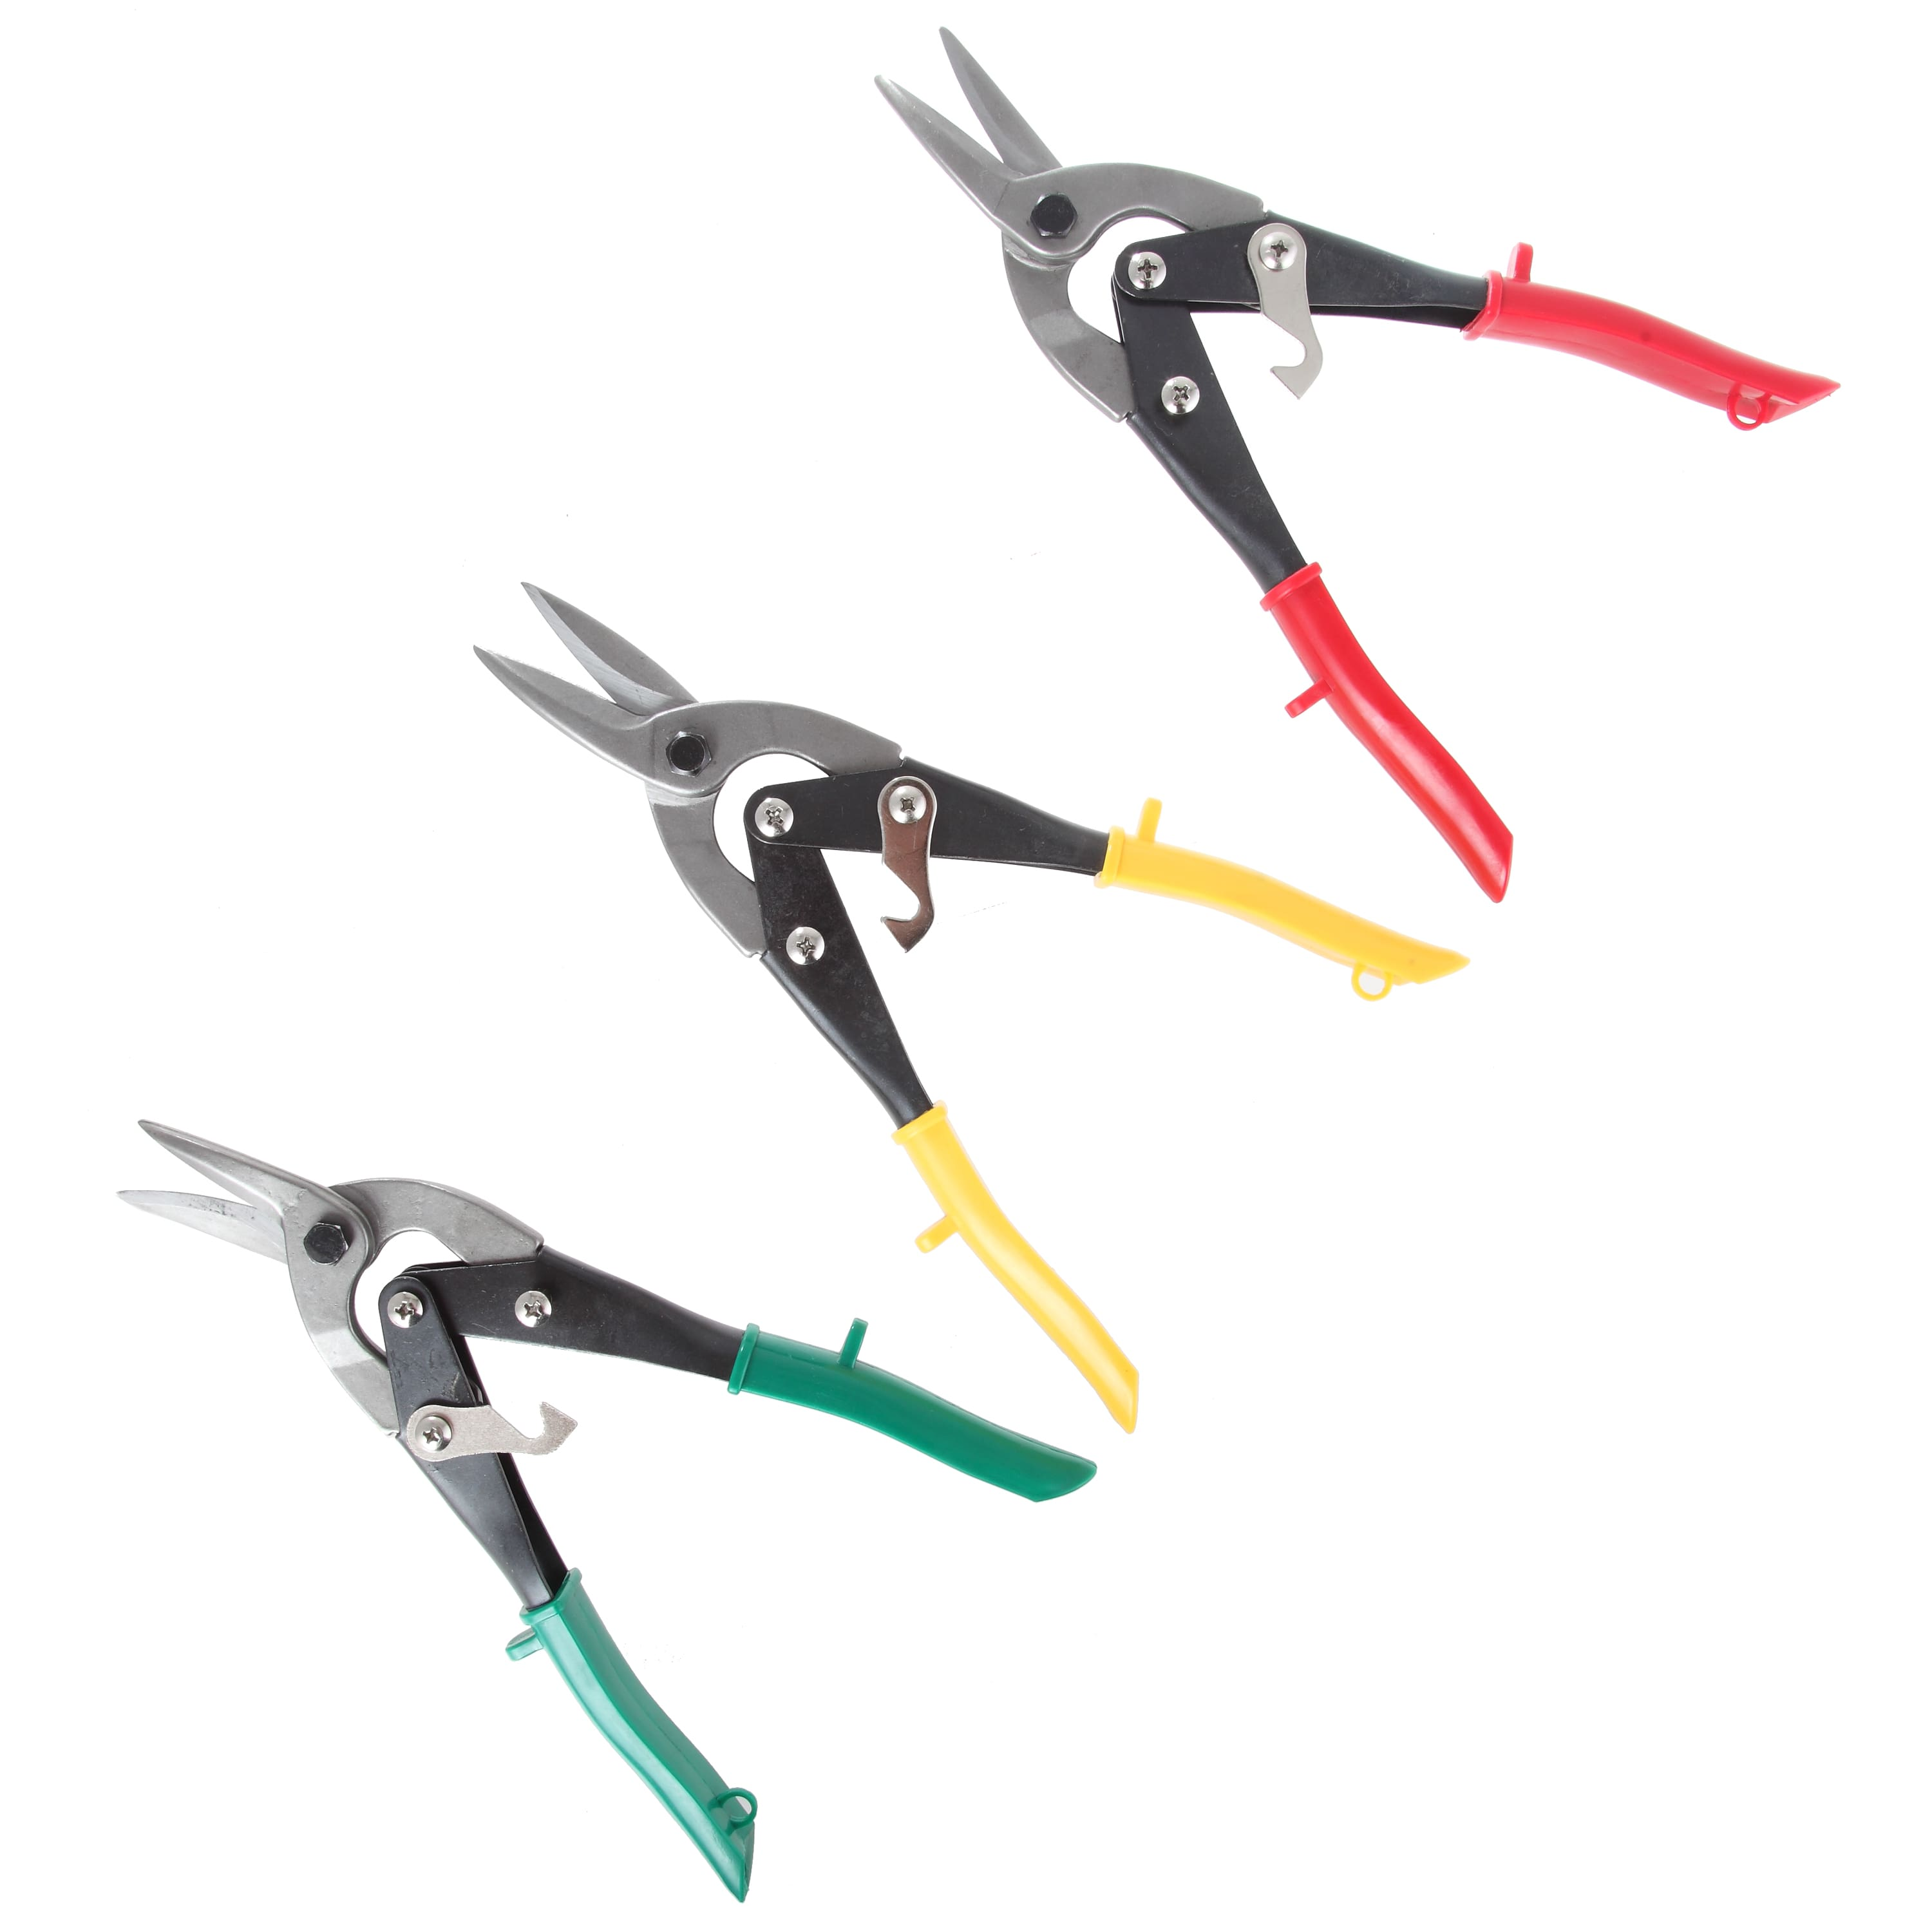 Hyper Tough TU90706J 3-Piece Aviation Snip Set With Cushion Grips -- On Clearance at Walmart for $8.44 with In-store P/U